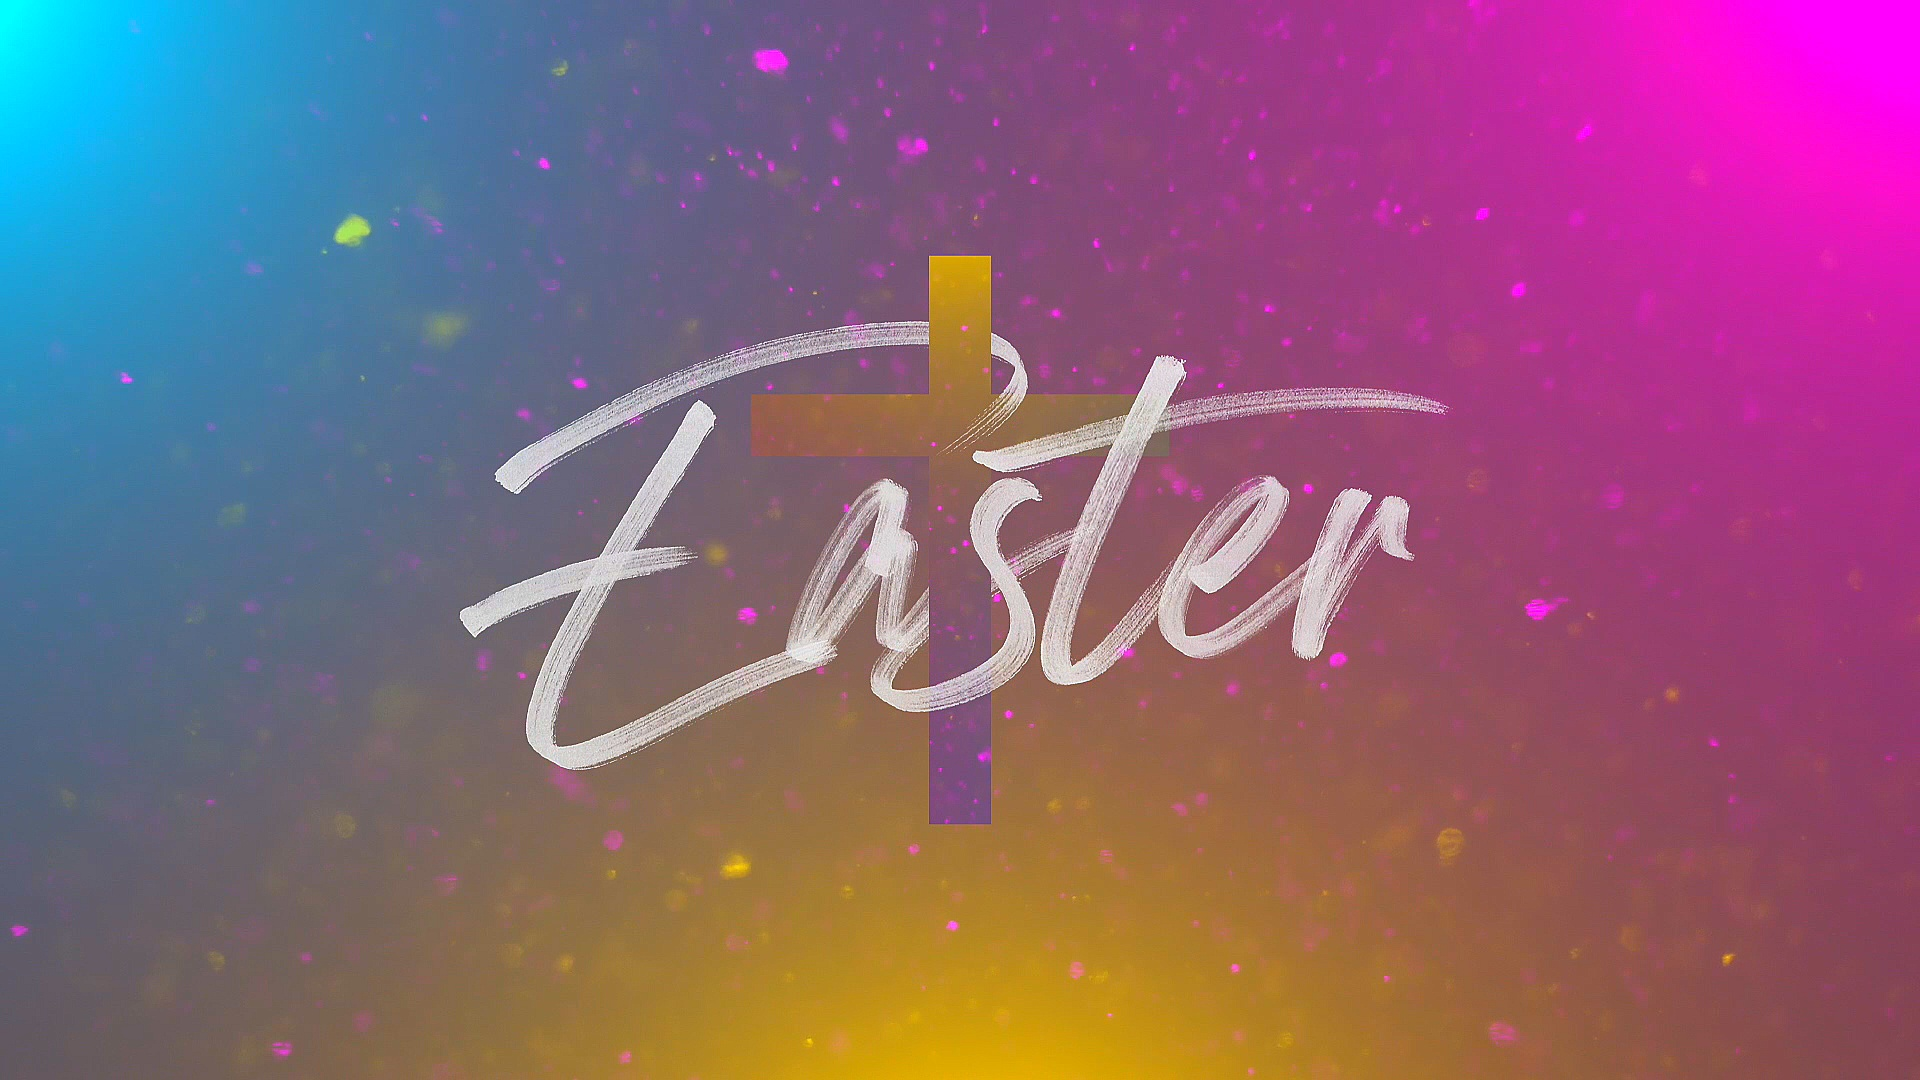 Nick Hall on Why Easter 2020 Could be the Most Important One of Our Lifetime